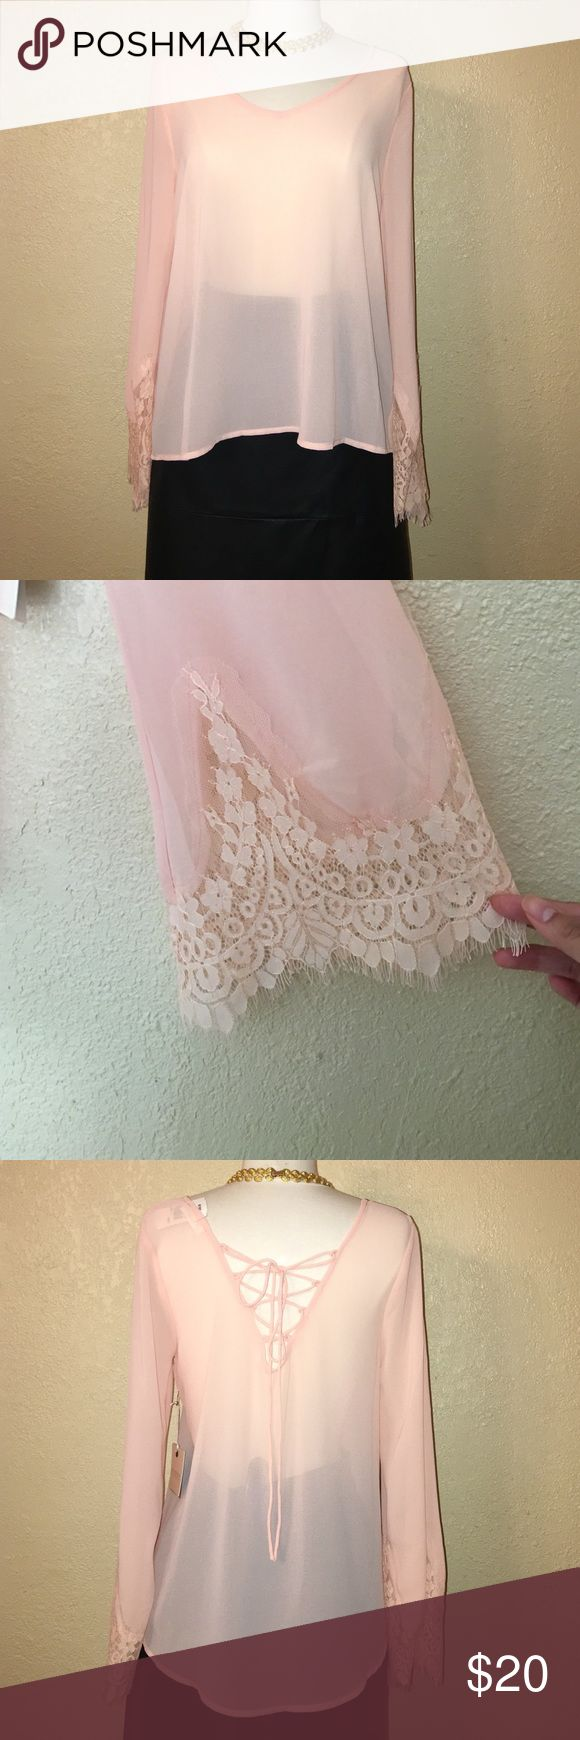 Peach Top See through top that can be worn with a Cami or bralette underneath. Flared lace sleeves for a hobo chic look. Top also has trendy laced detail in back. Blu Pepper Tops Blouses